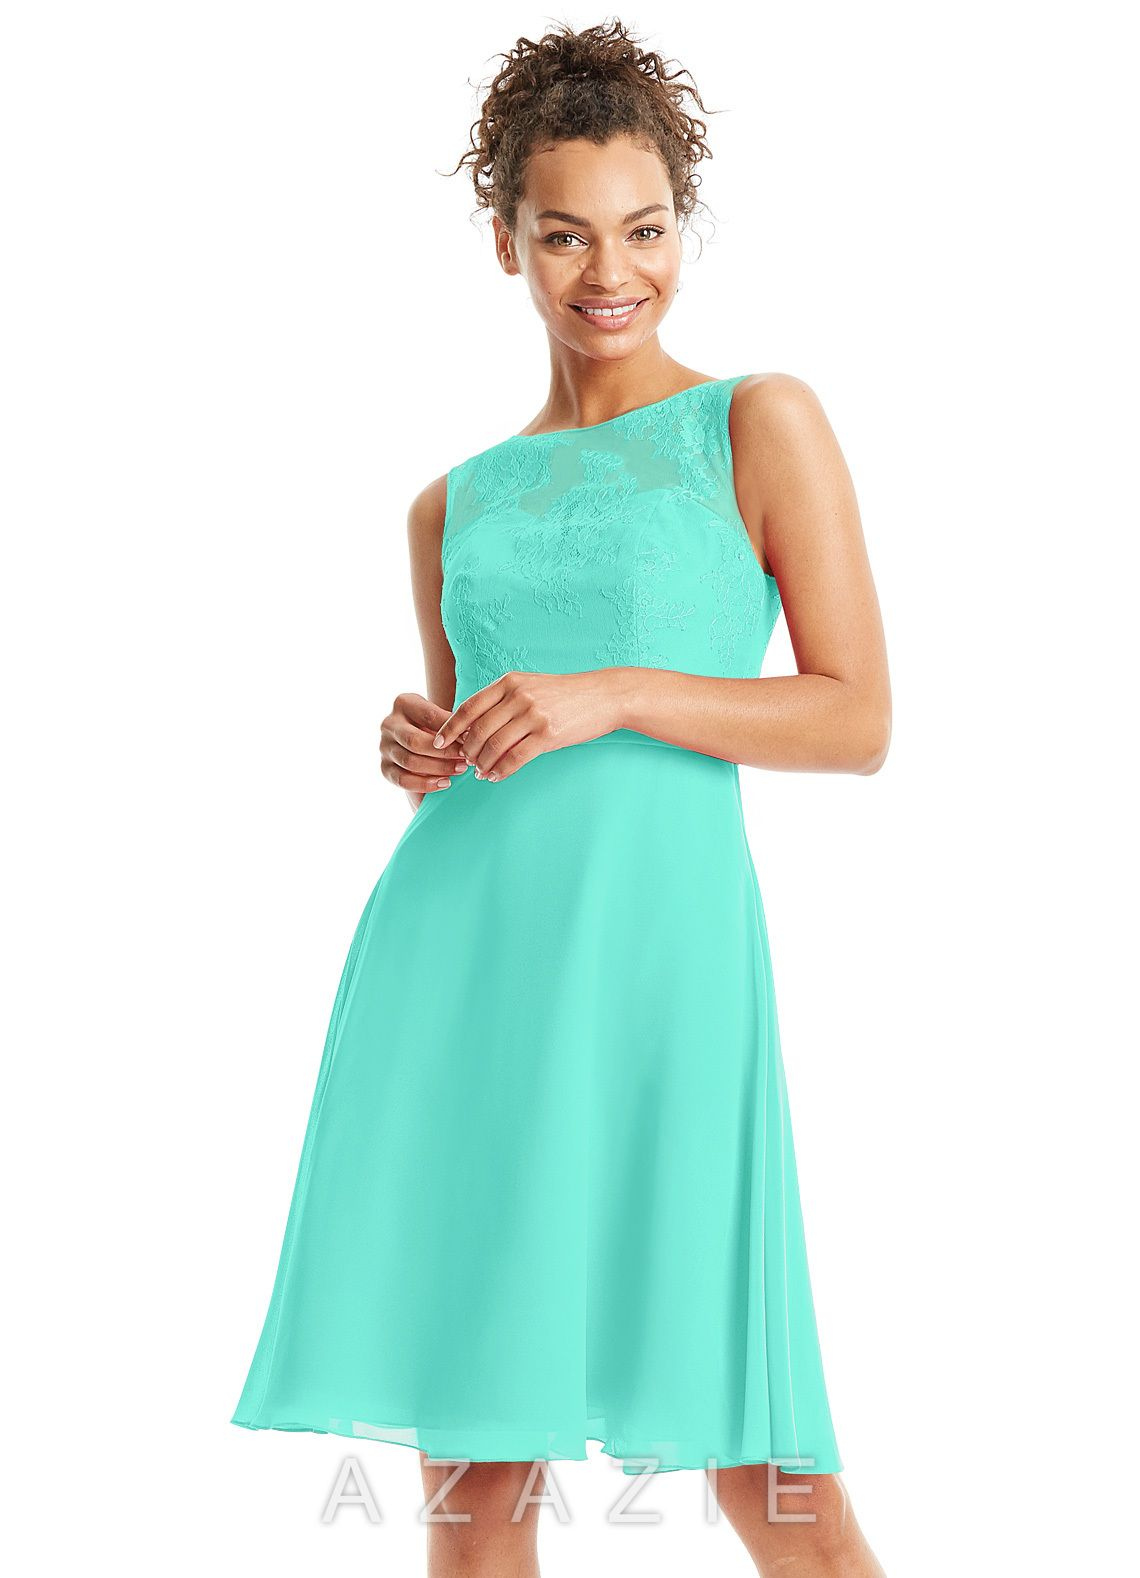 Giana bridesmaid dress favorite color and shopping